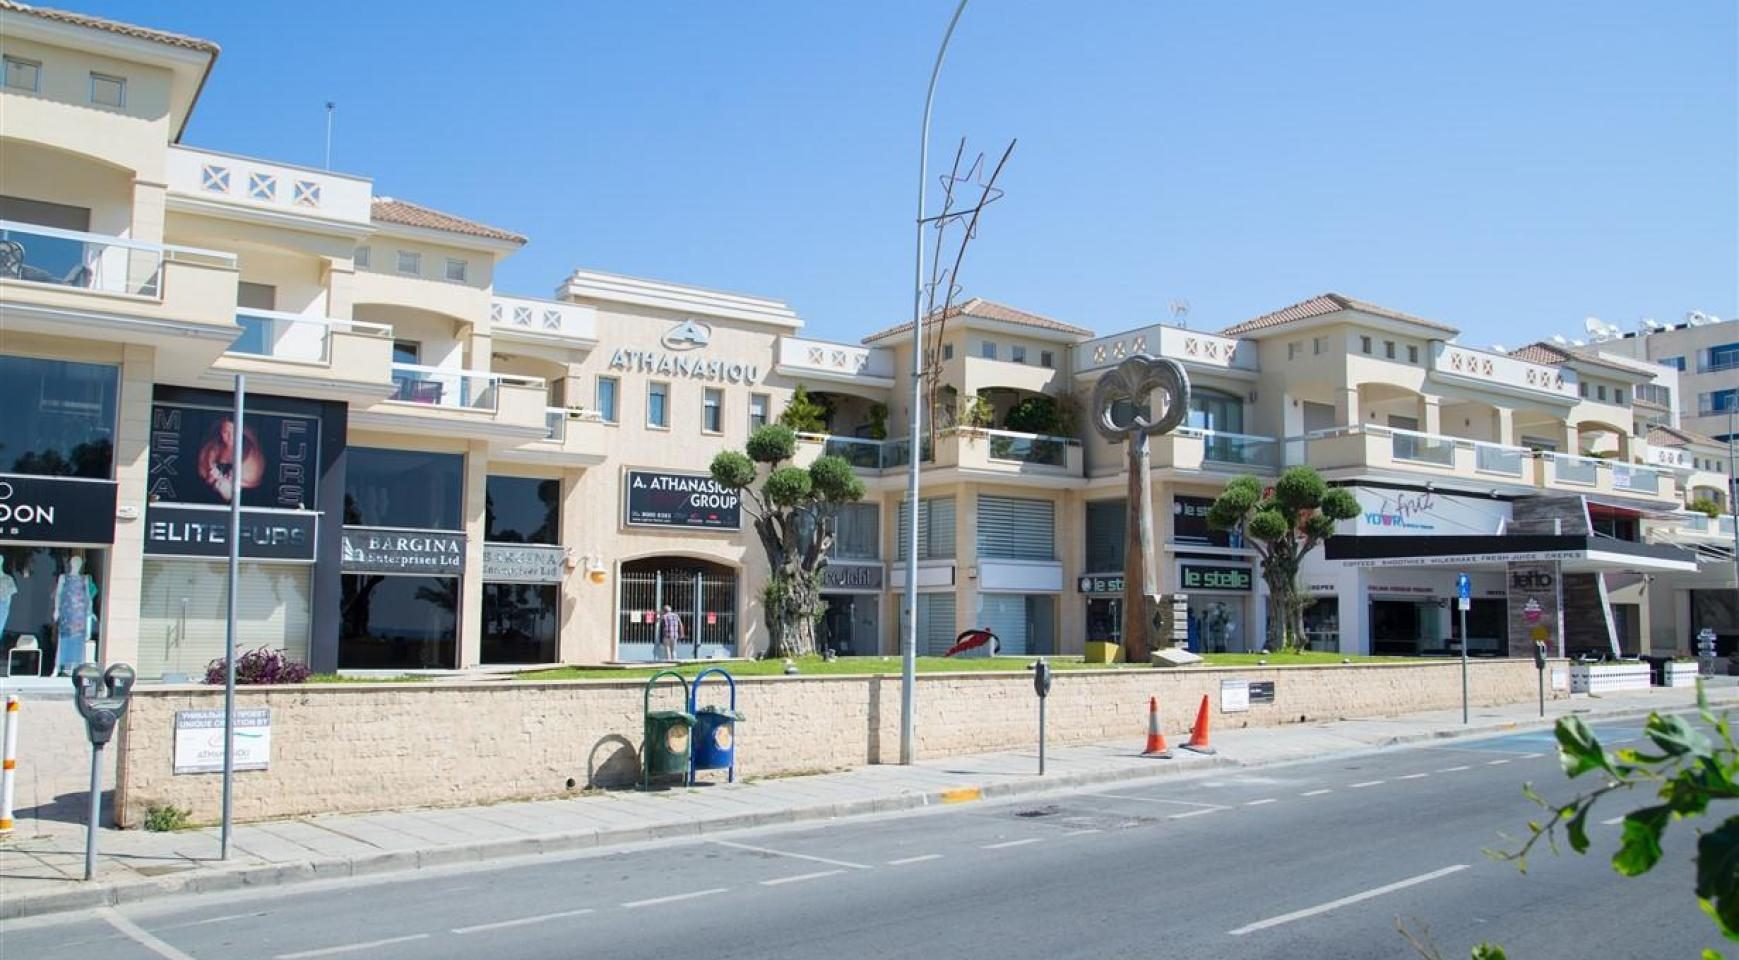 Luxury 2 Bedroom Apartment Mesogios Iris 304 in the Tourist area near the Beach - 41